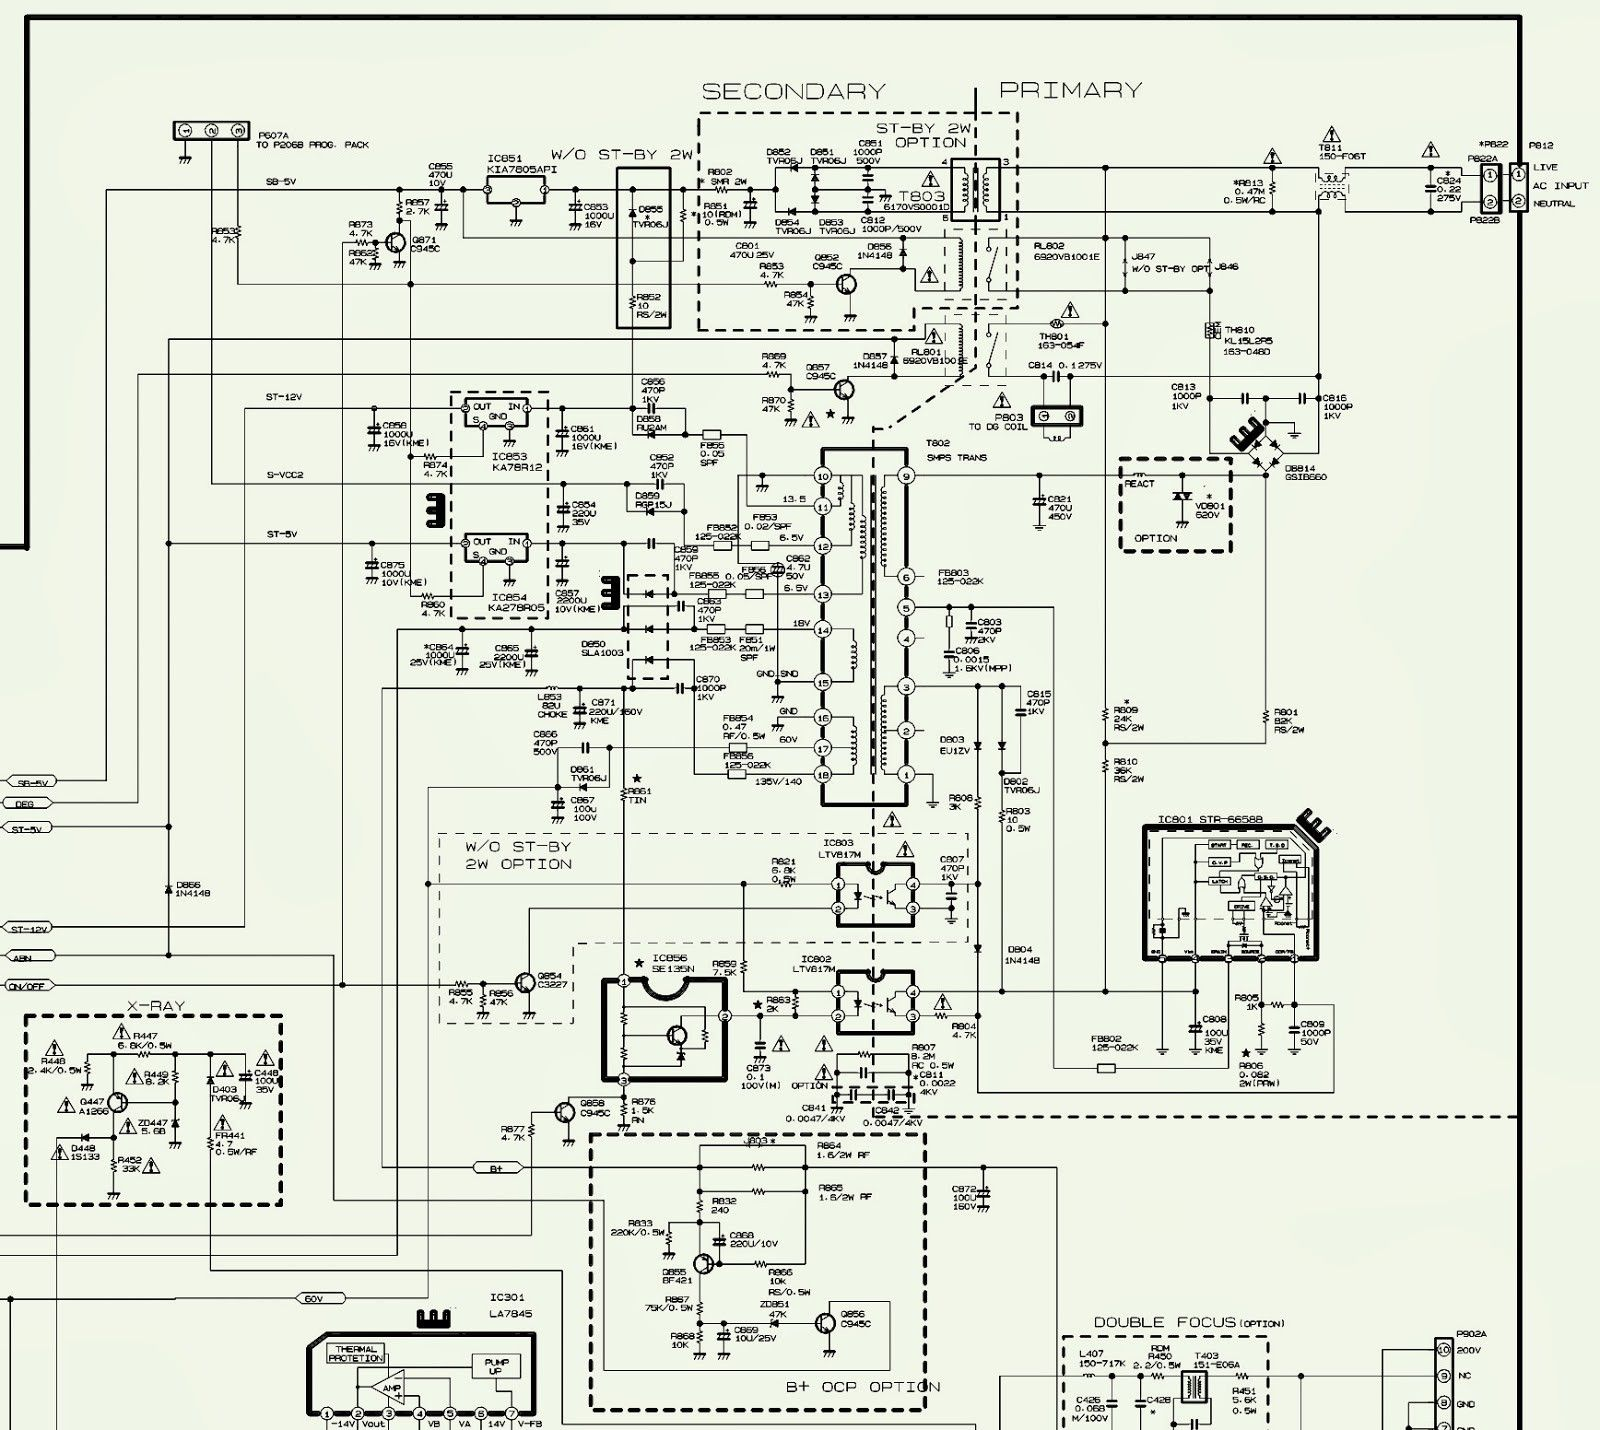 New Panasonic Inverter Wiring Diagram